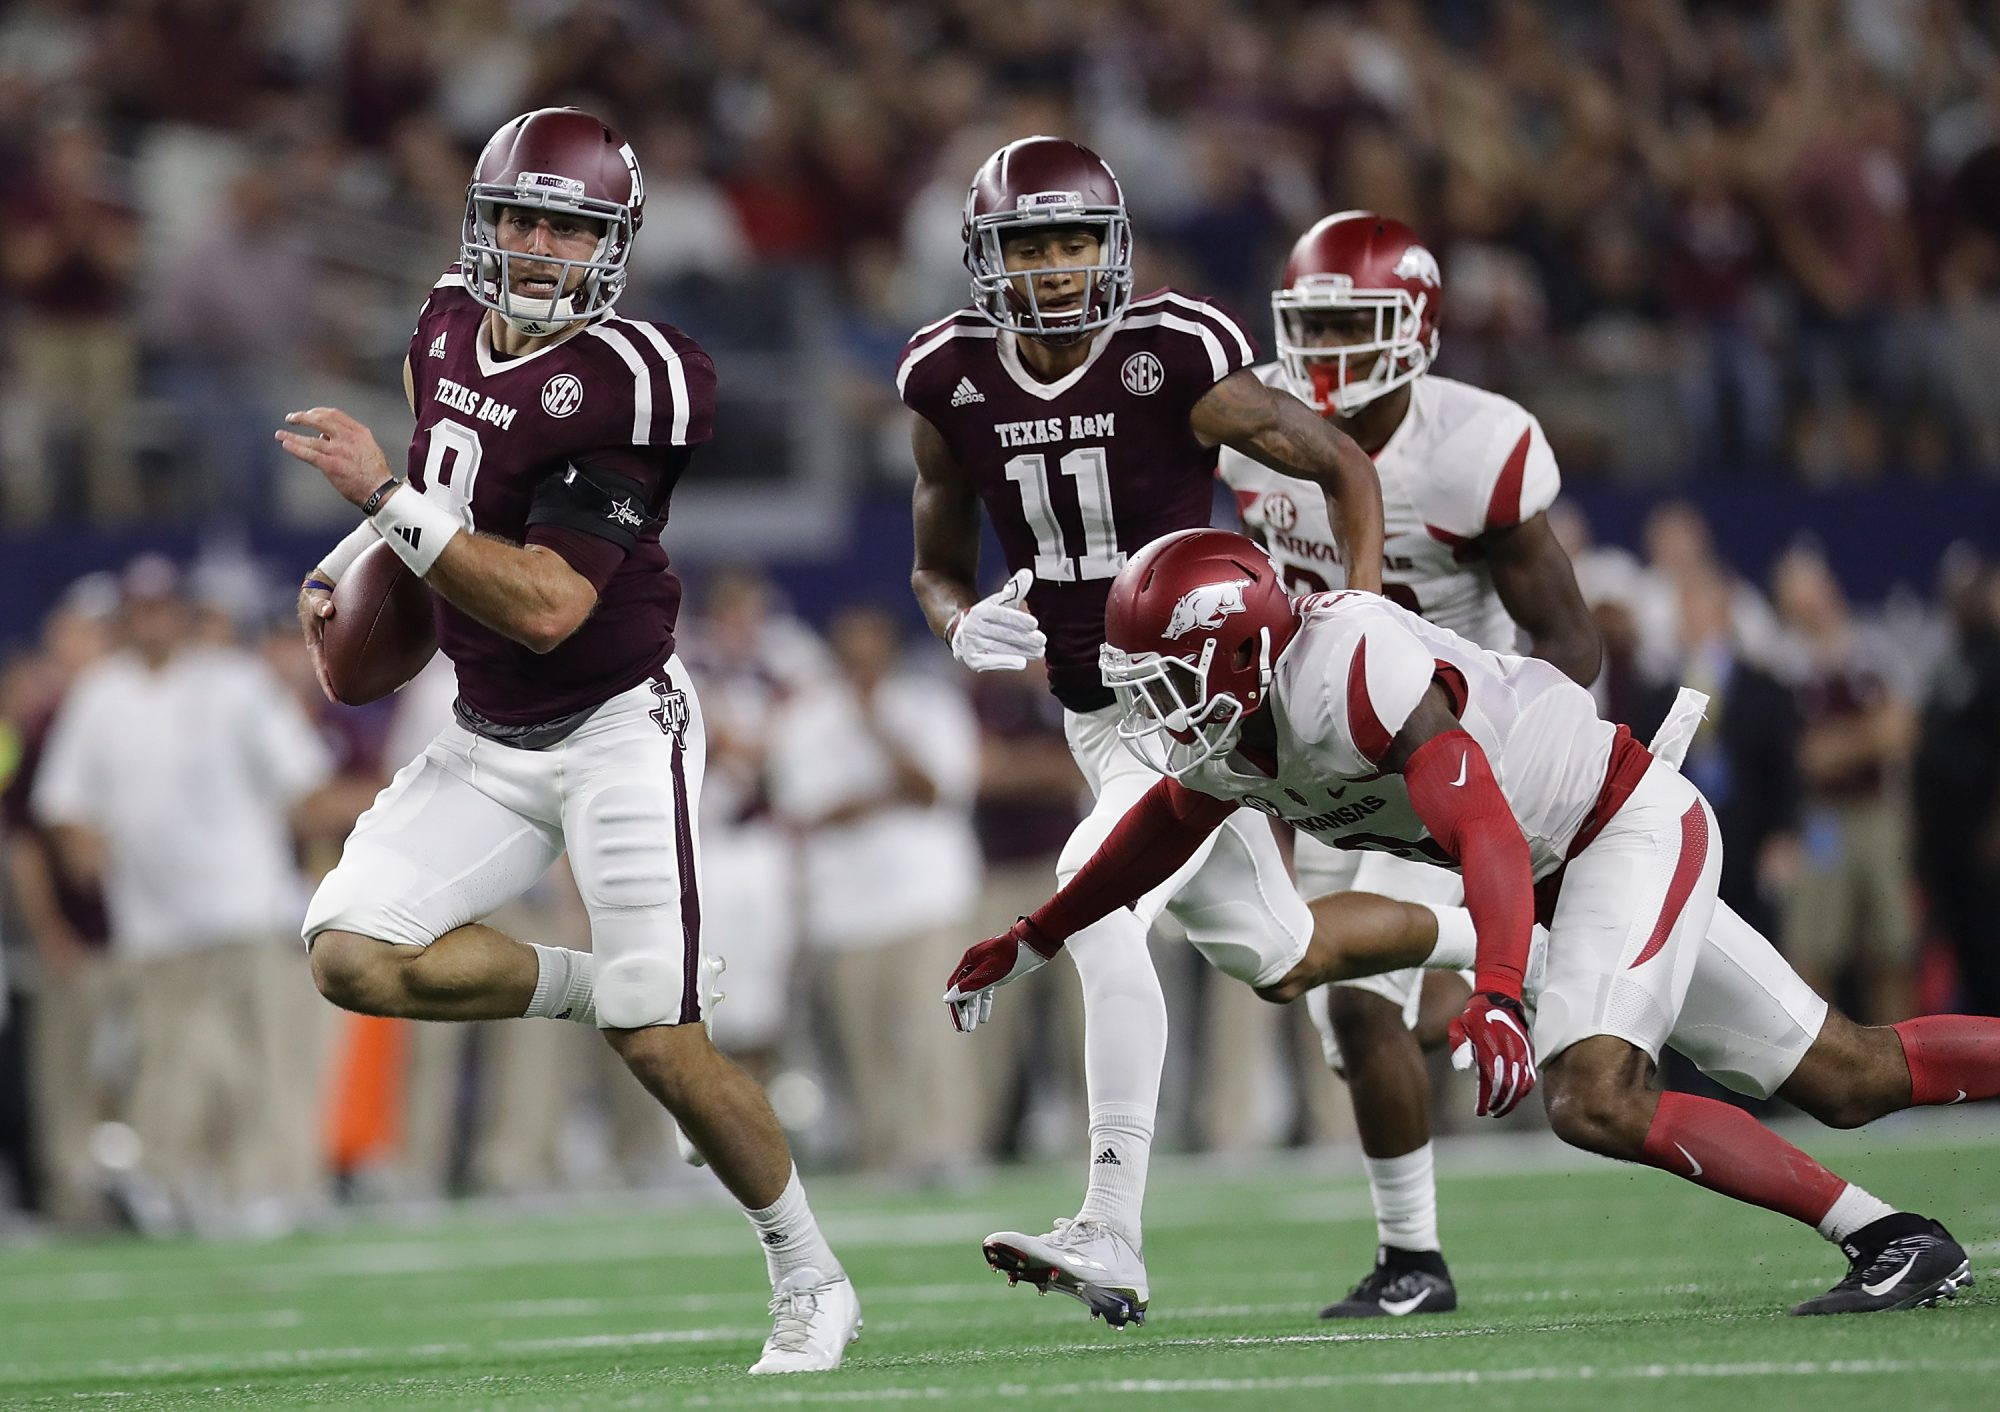 SEC Football: Texas A&M